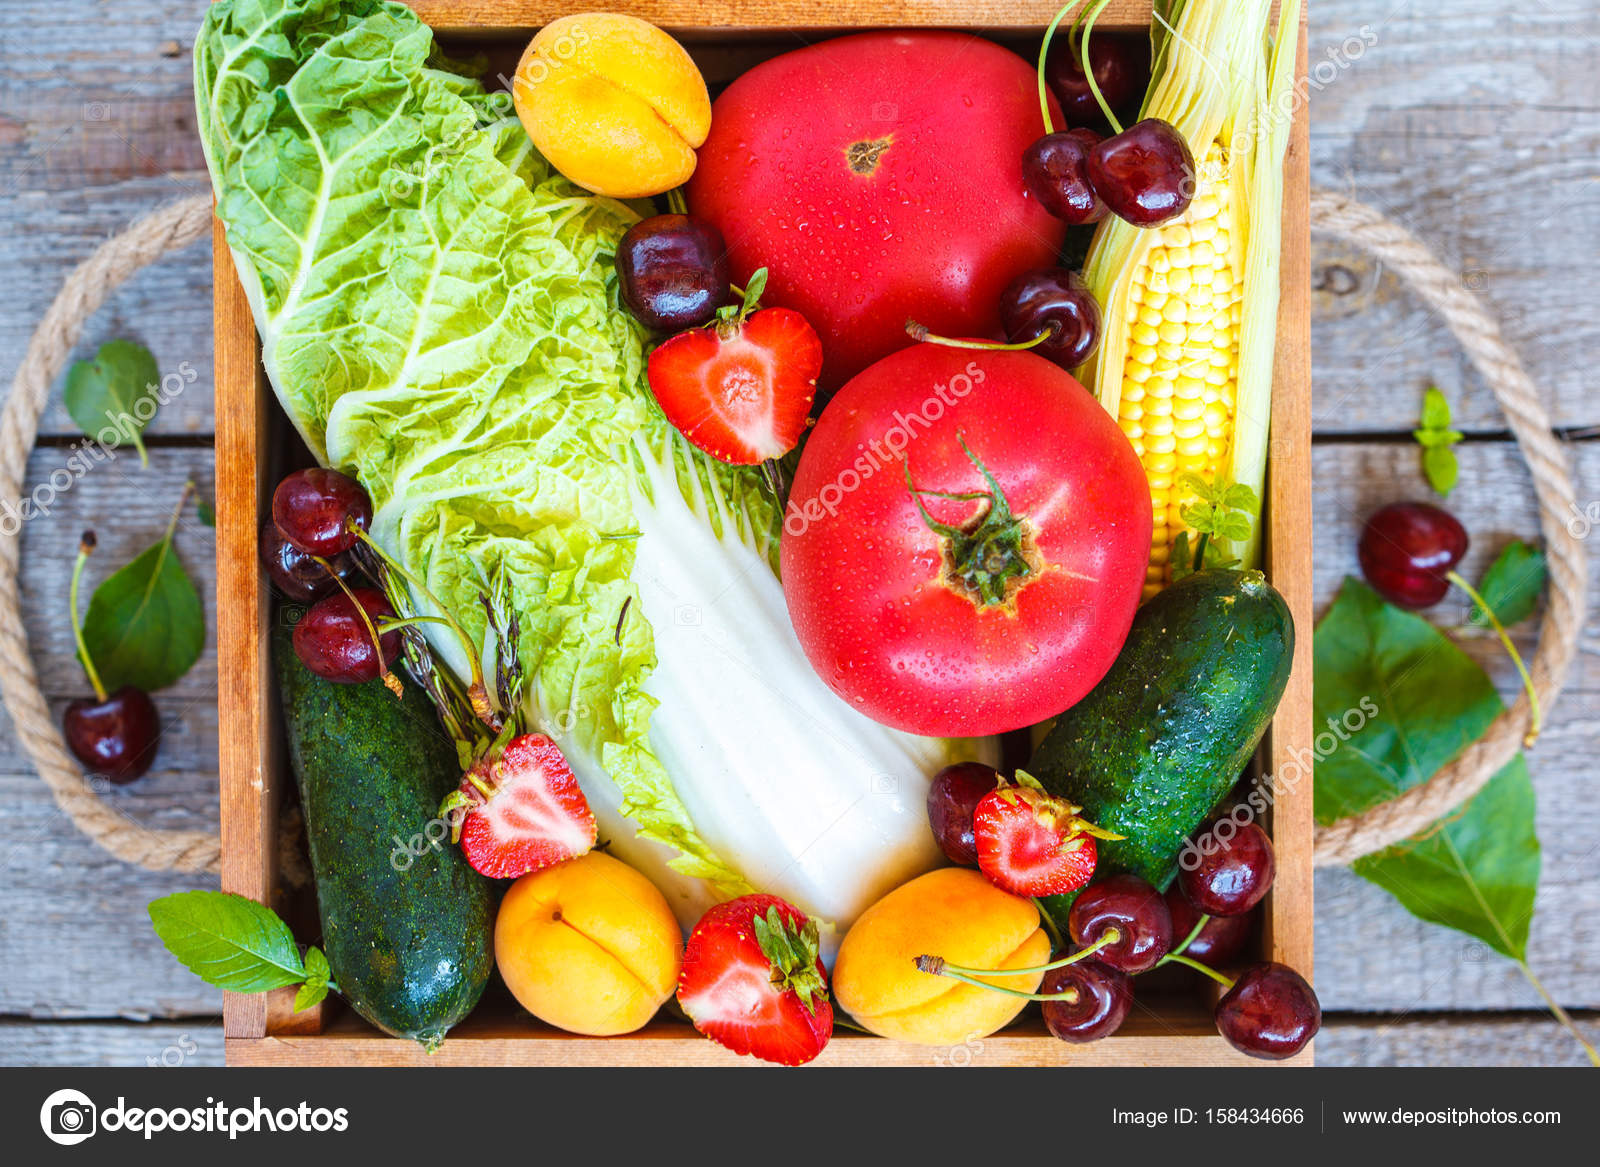 Summer Fruits And Vegetables In A Wooden Box. U2014 Stock Photo